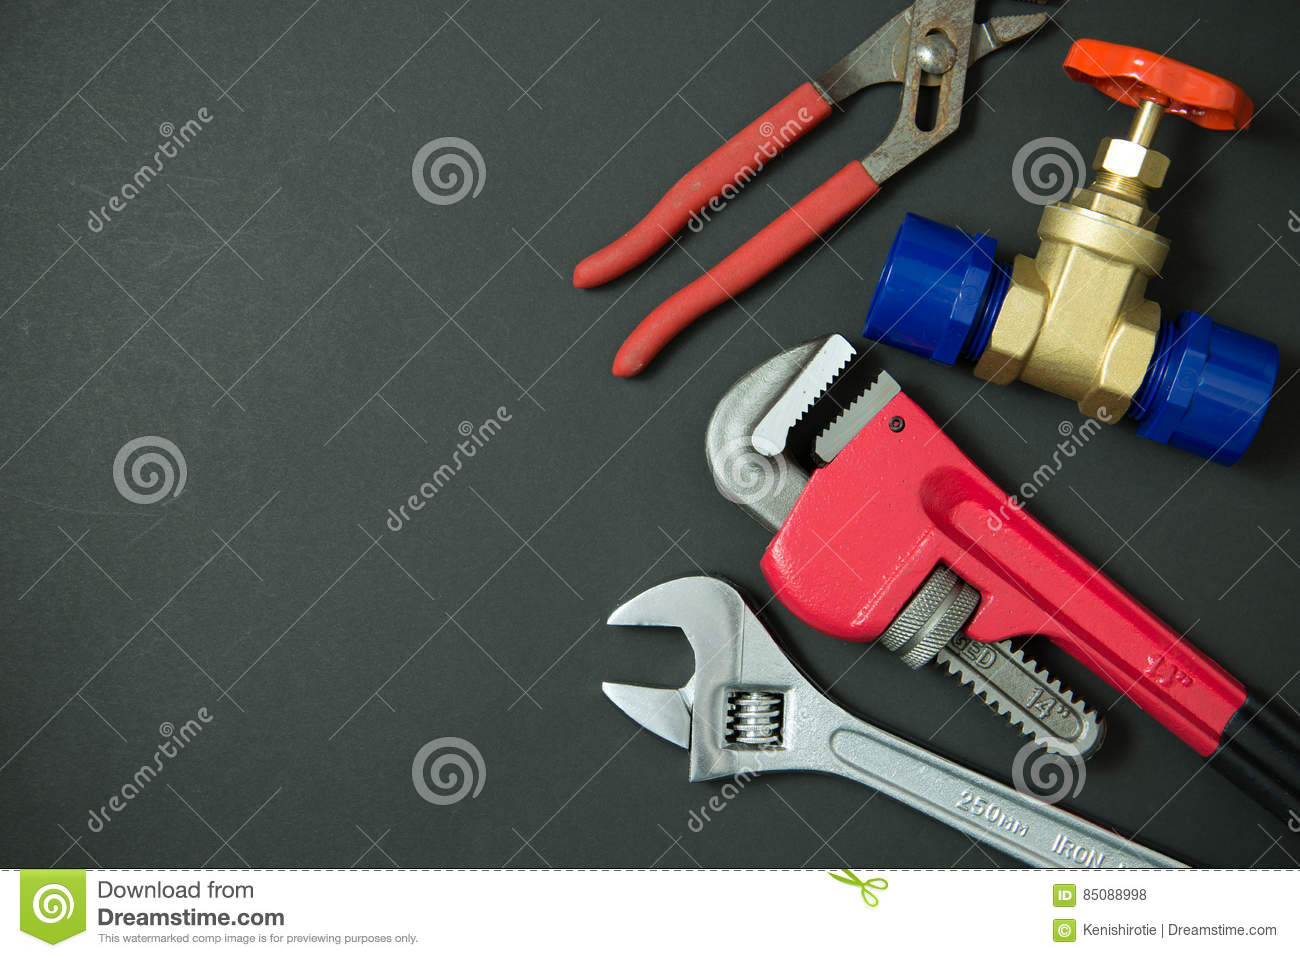 Plumbing tools and materials royalty free stock